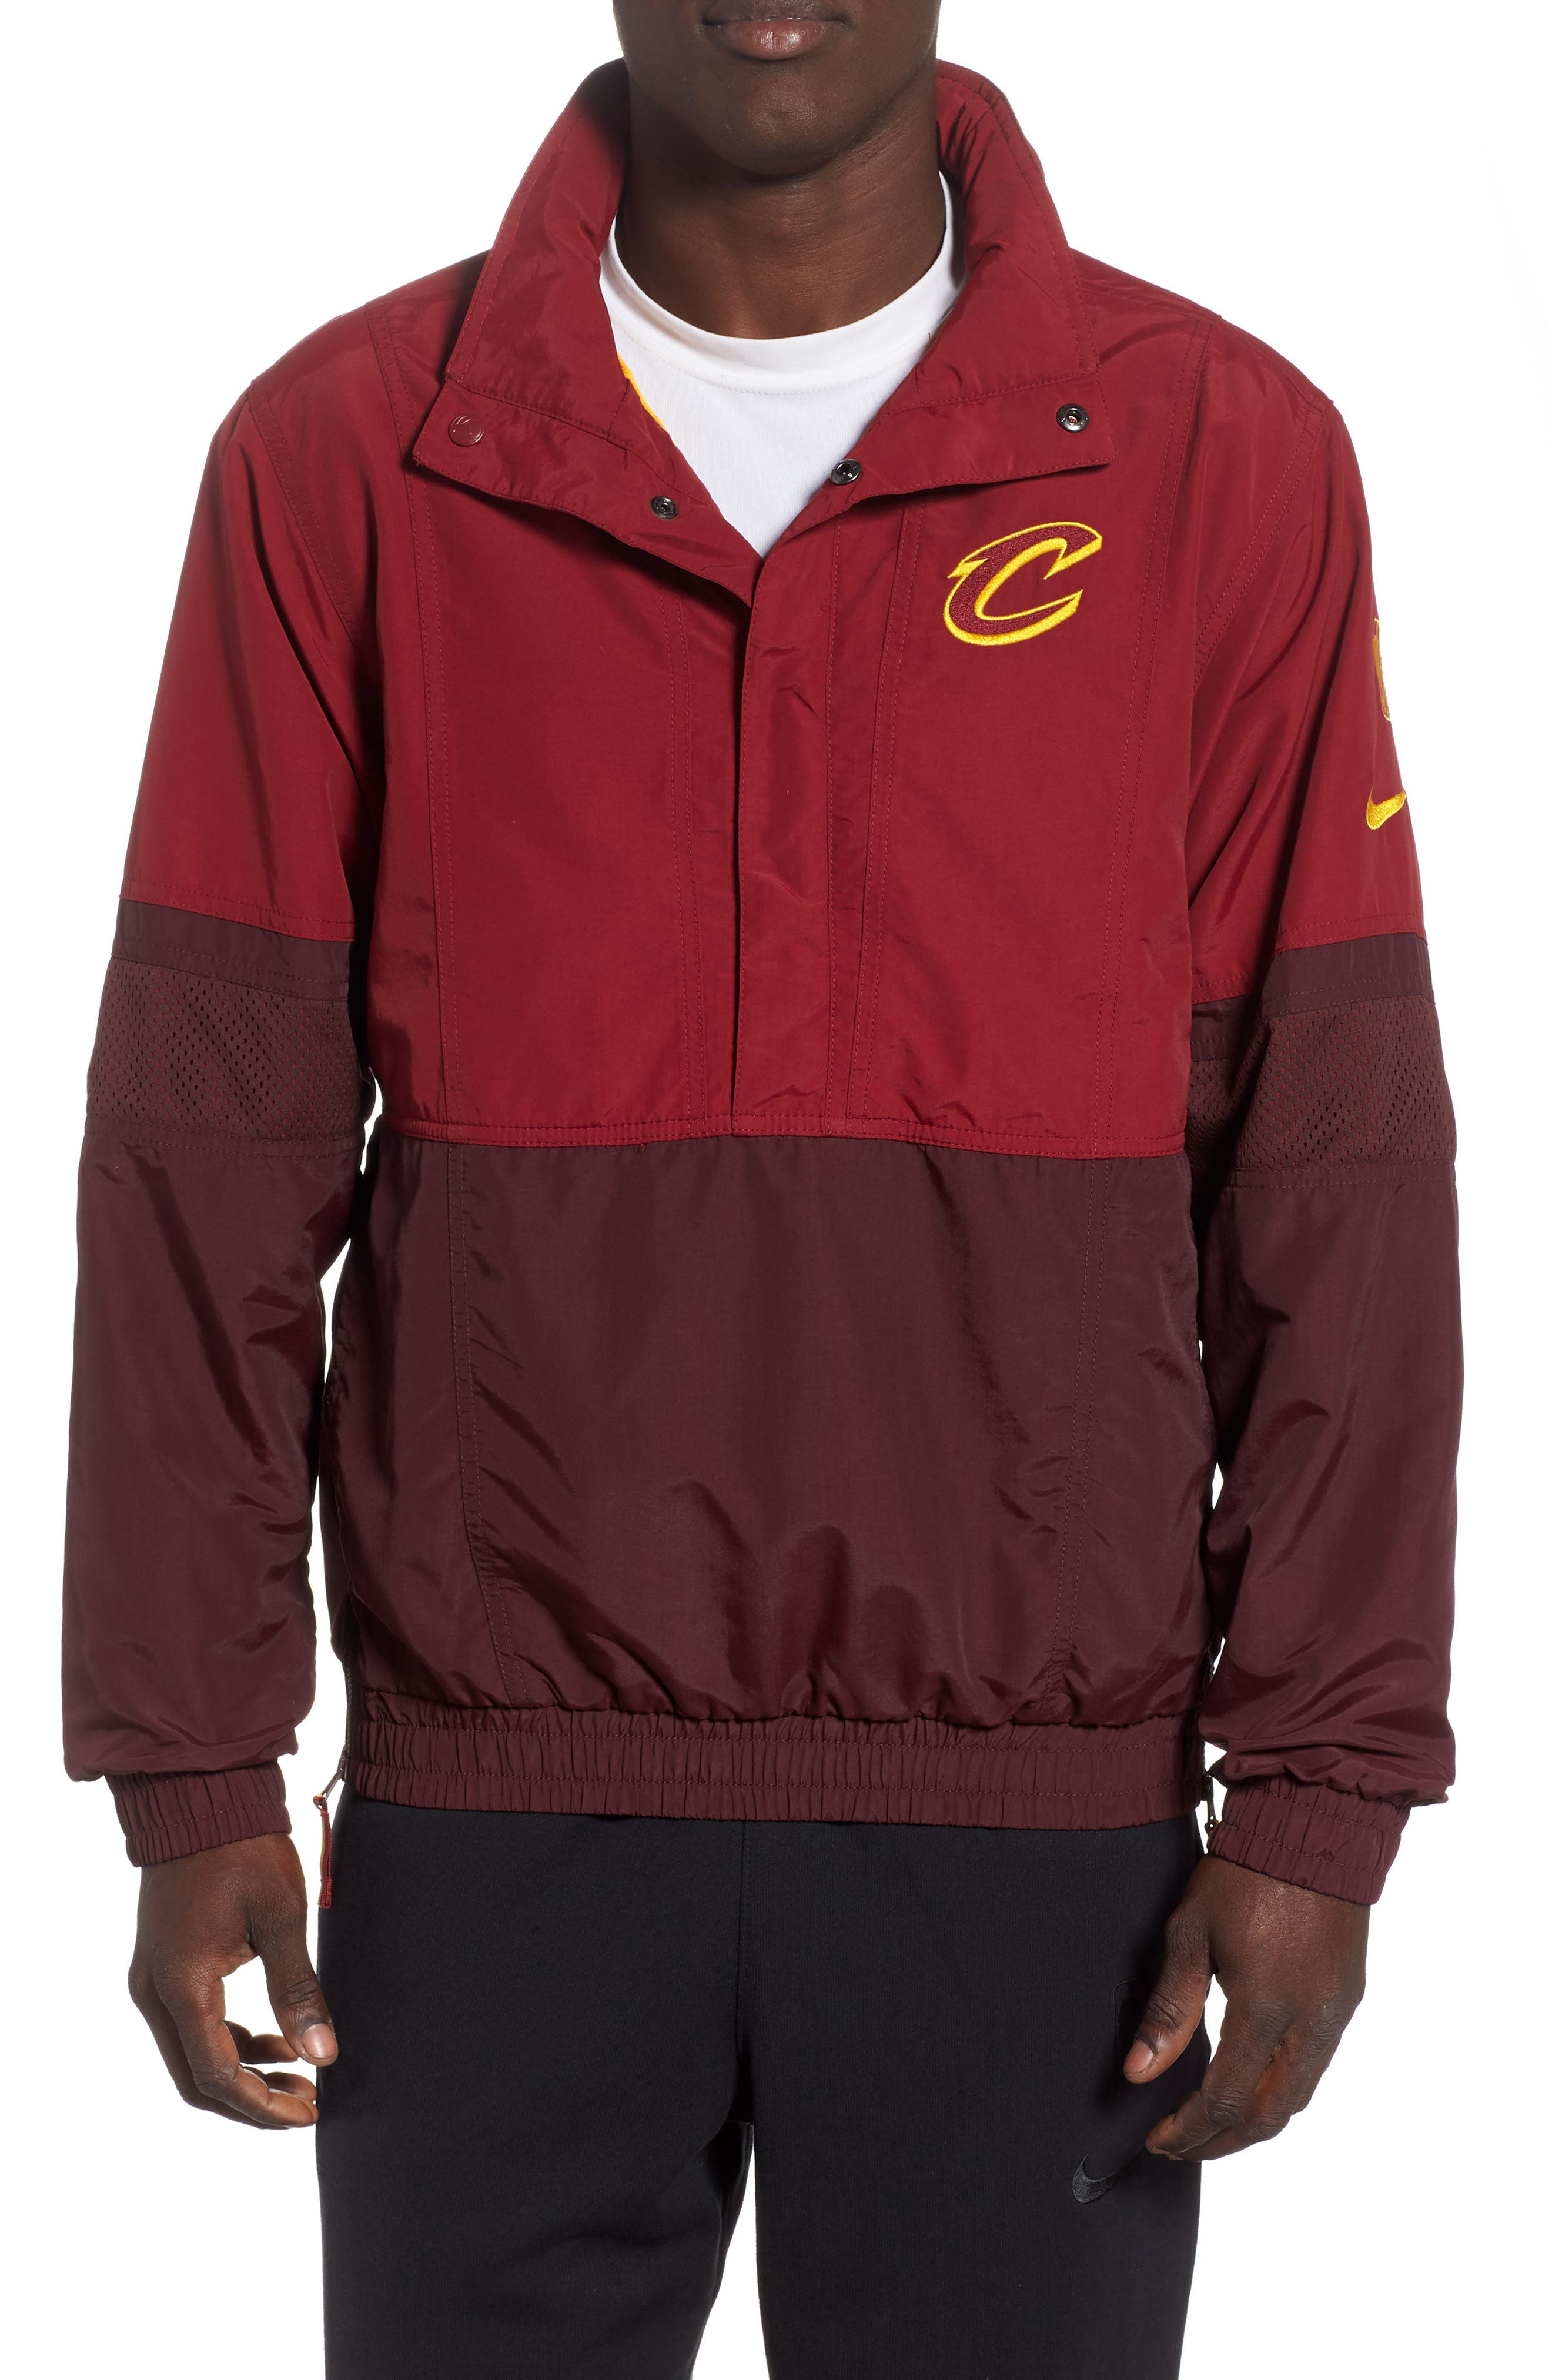 NIKE,                             Cleveland Cavaliers Courtside Warm-Up Jacket,                             Main thumbnail 1, color,                             TEAM RED/ BURGUNDY / GOLD